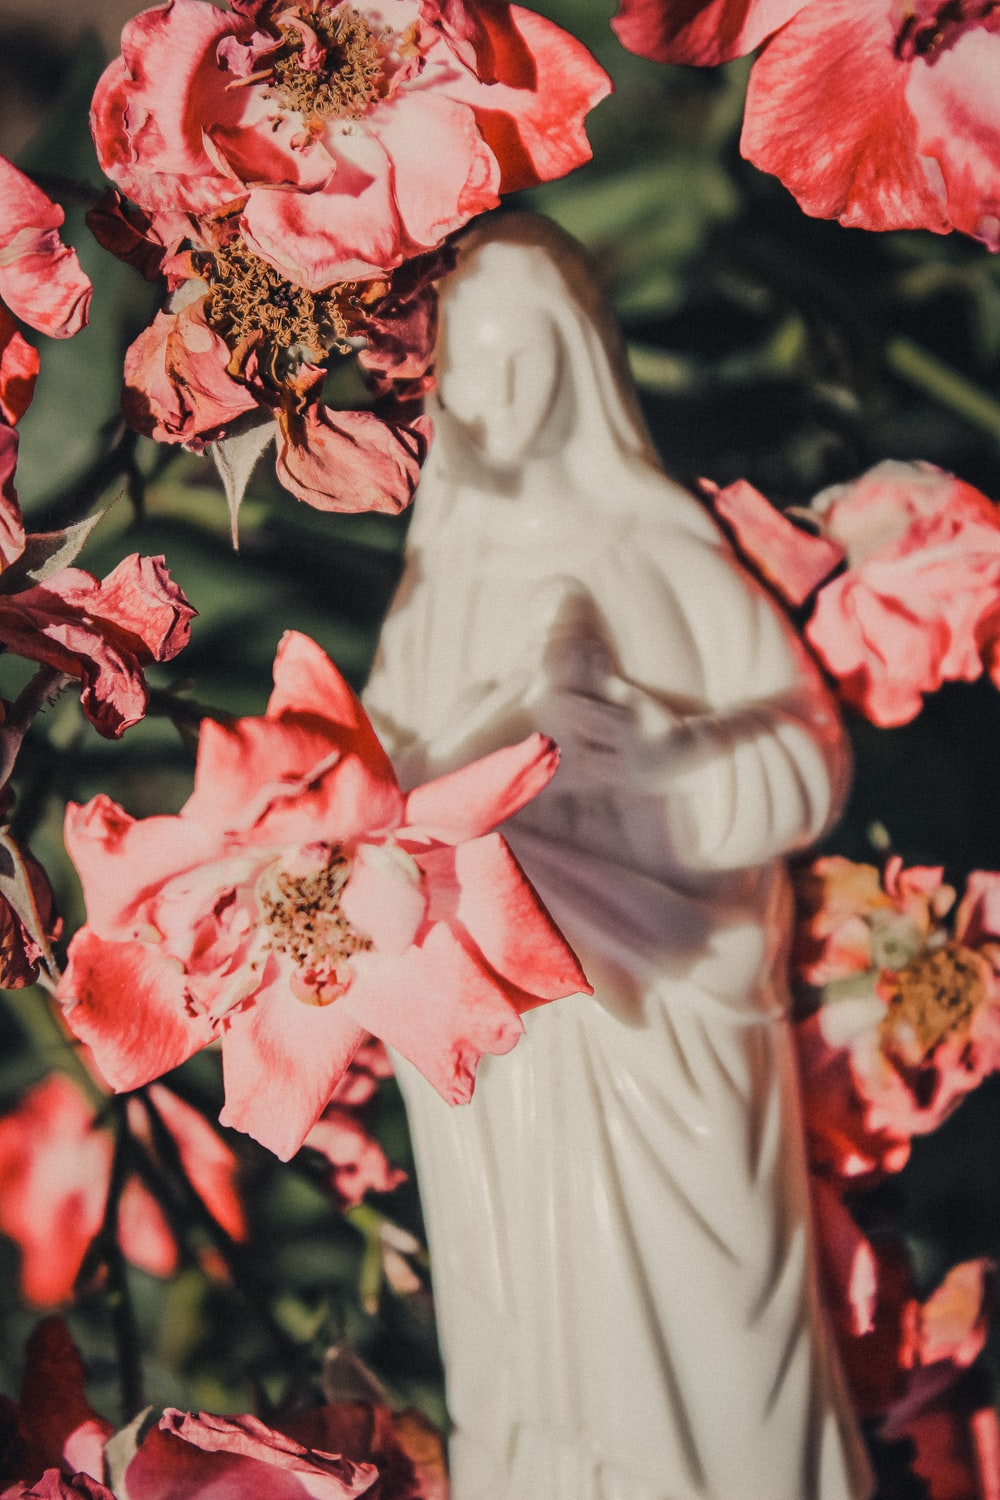 white mother Mary figurine behind pink flowers